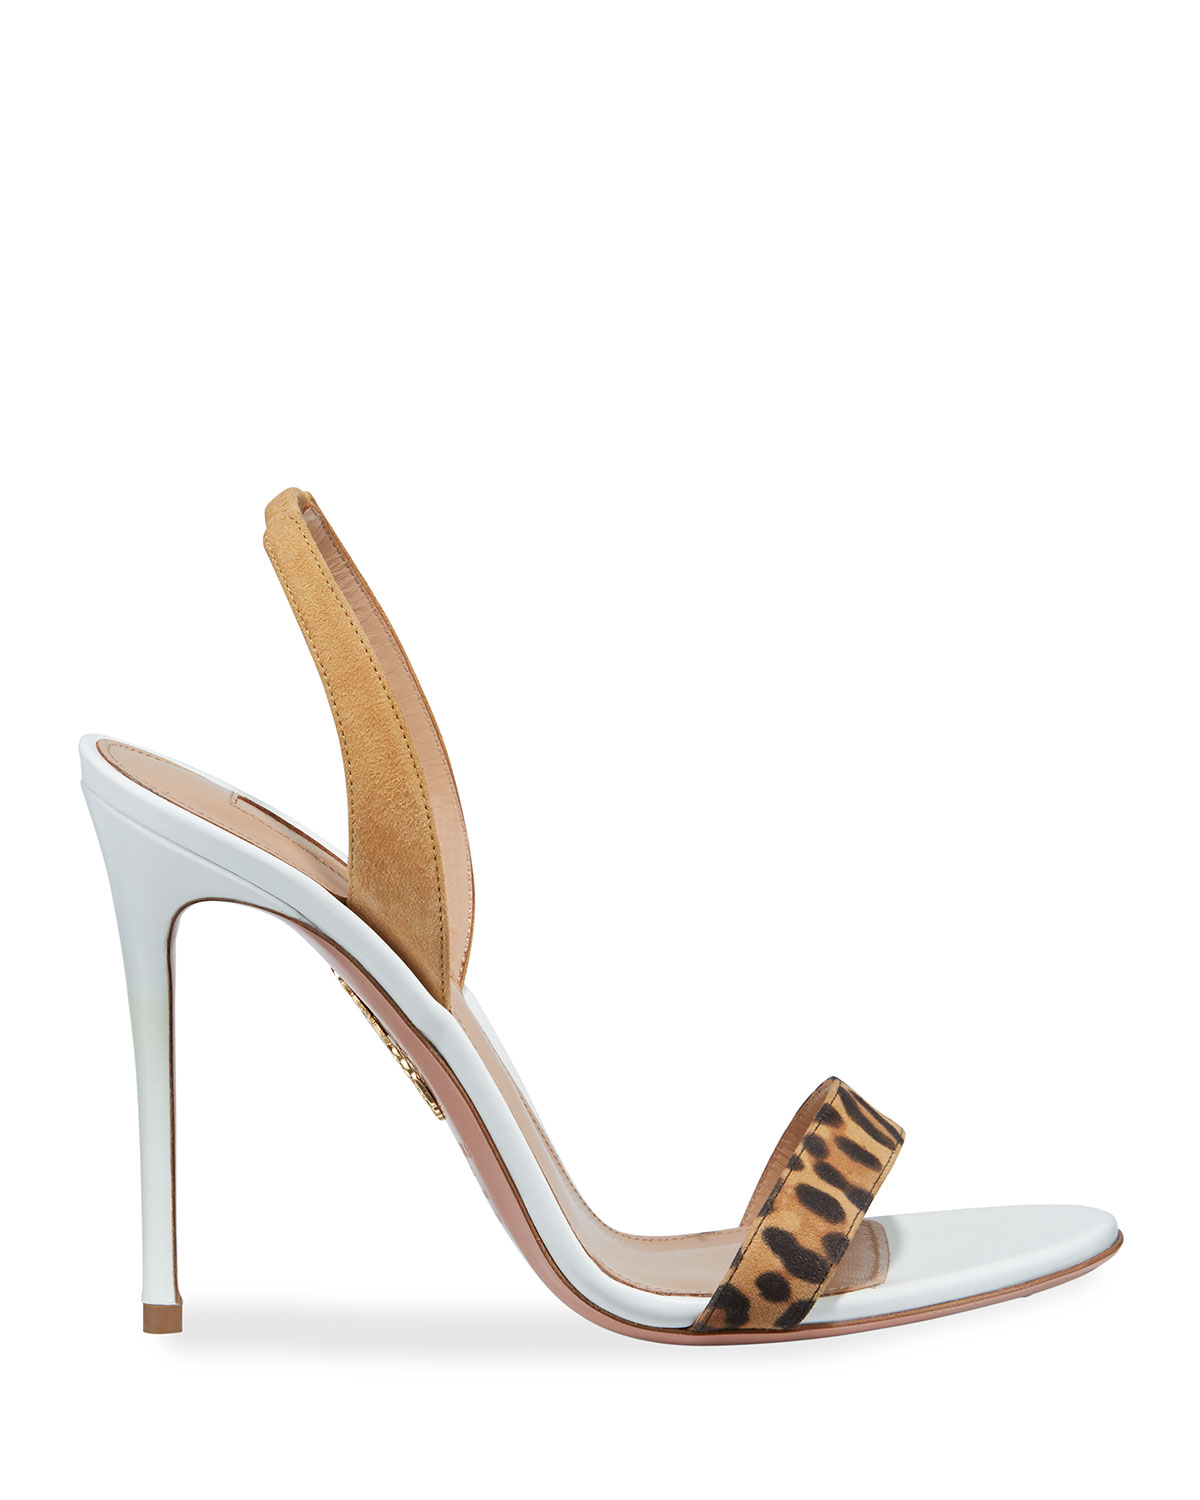 So Nude Leopard Strap Slingback Sandals by Aquazzura